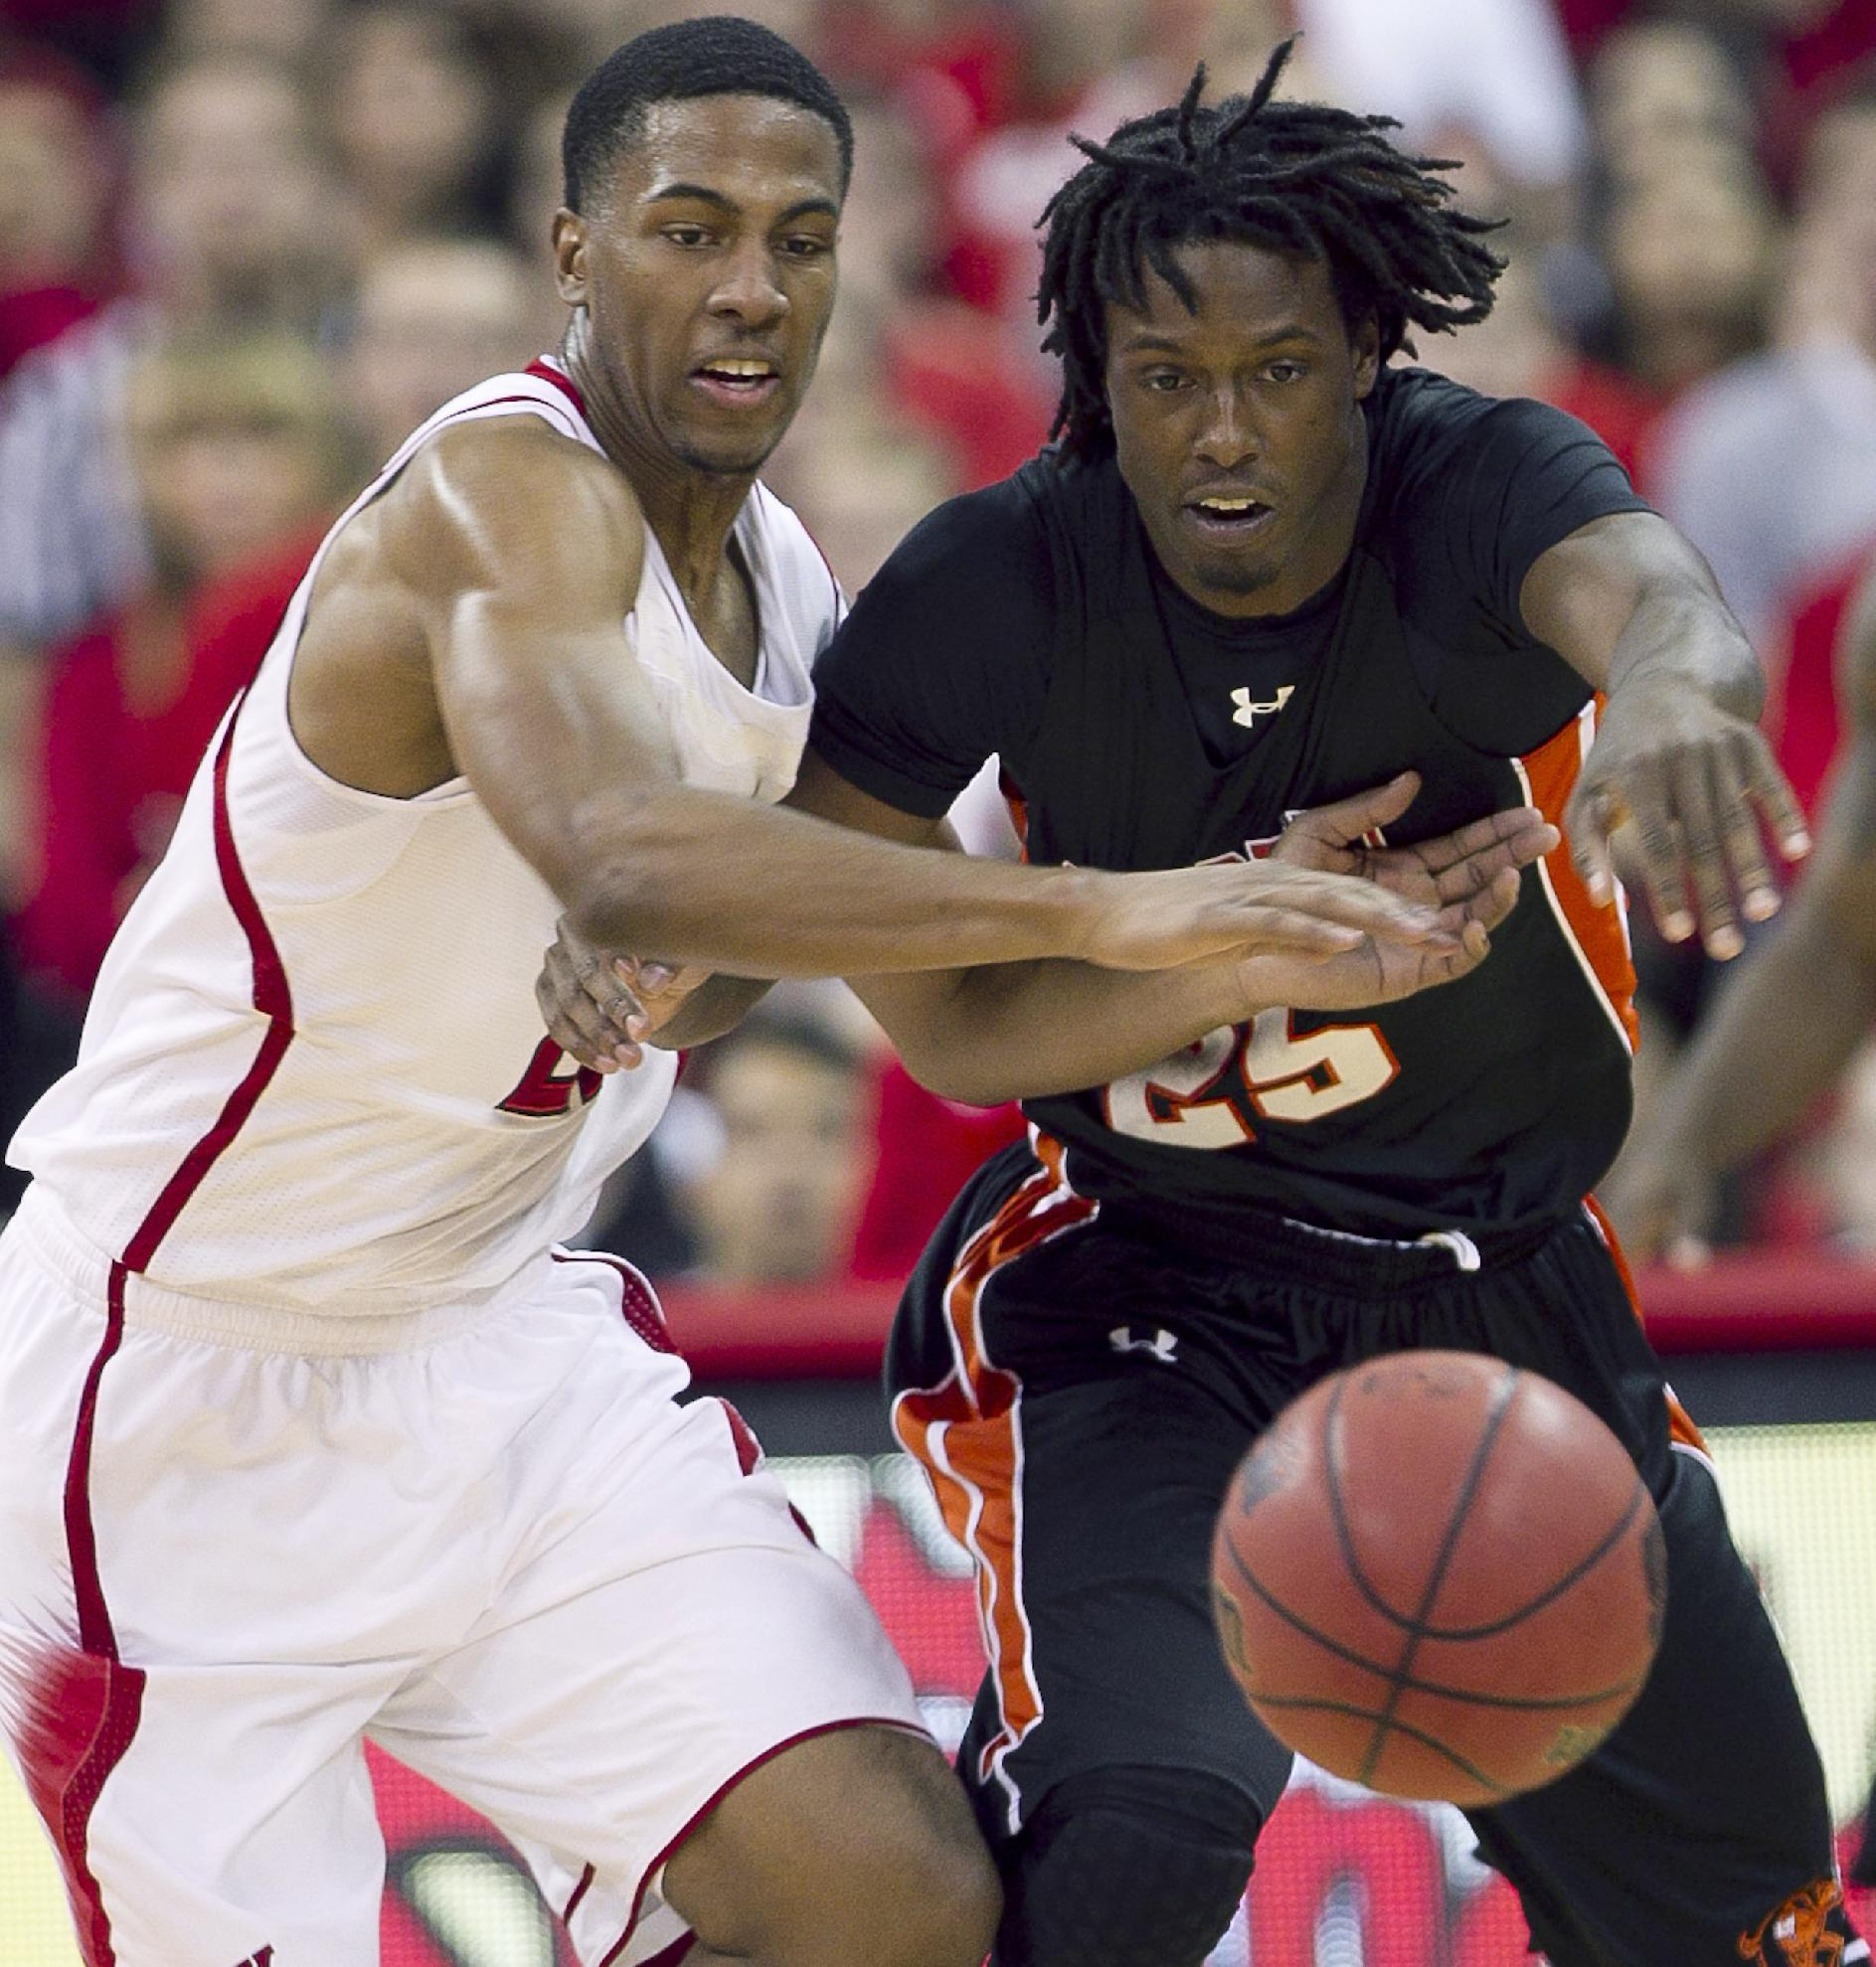 North Carolina State's Ralston Turner (22) makes a steal from Campbell's Reco McCarter (25) during the second half of an NCAA college basketball game Saturday Nov. 16, 2013 in Raleigh, N.C